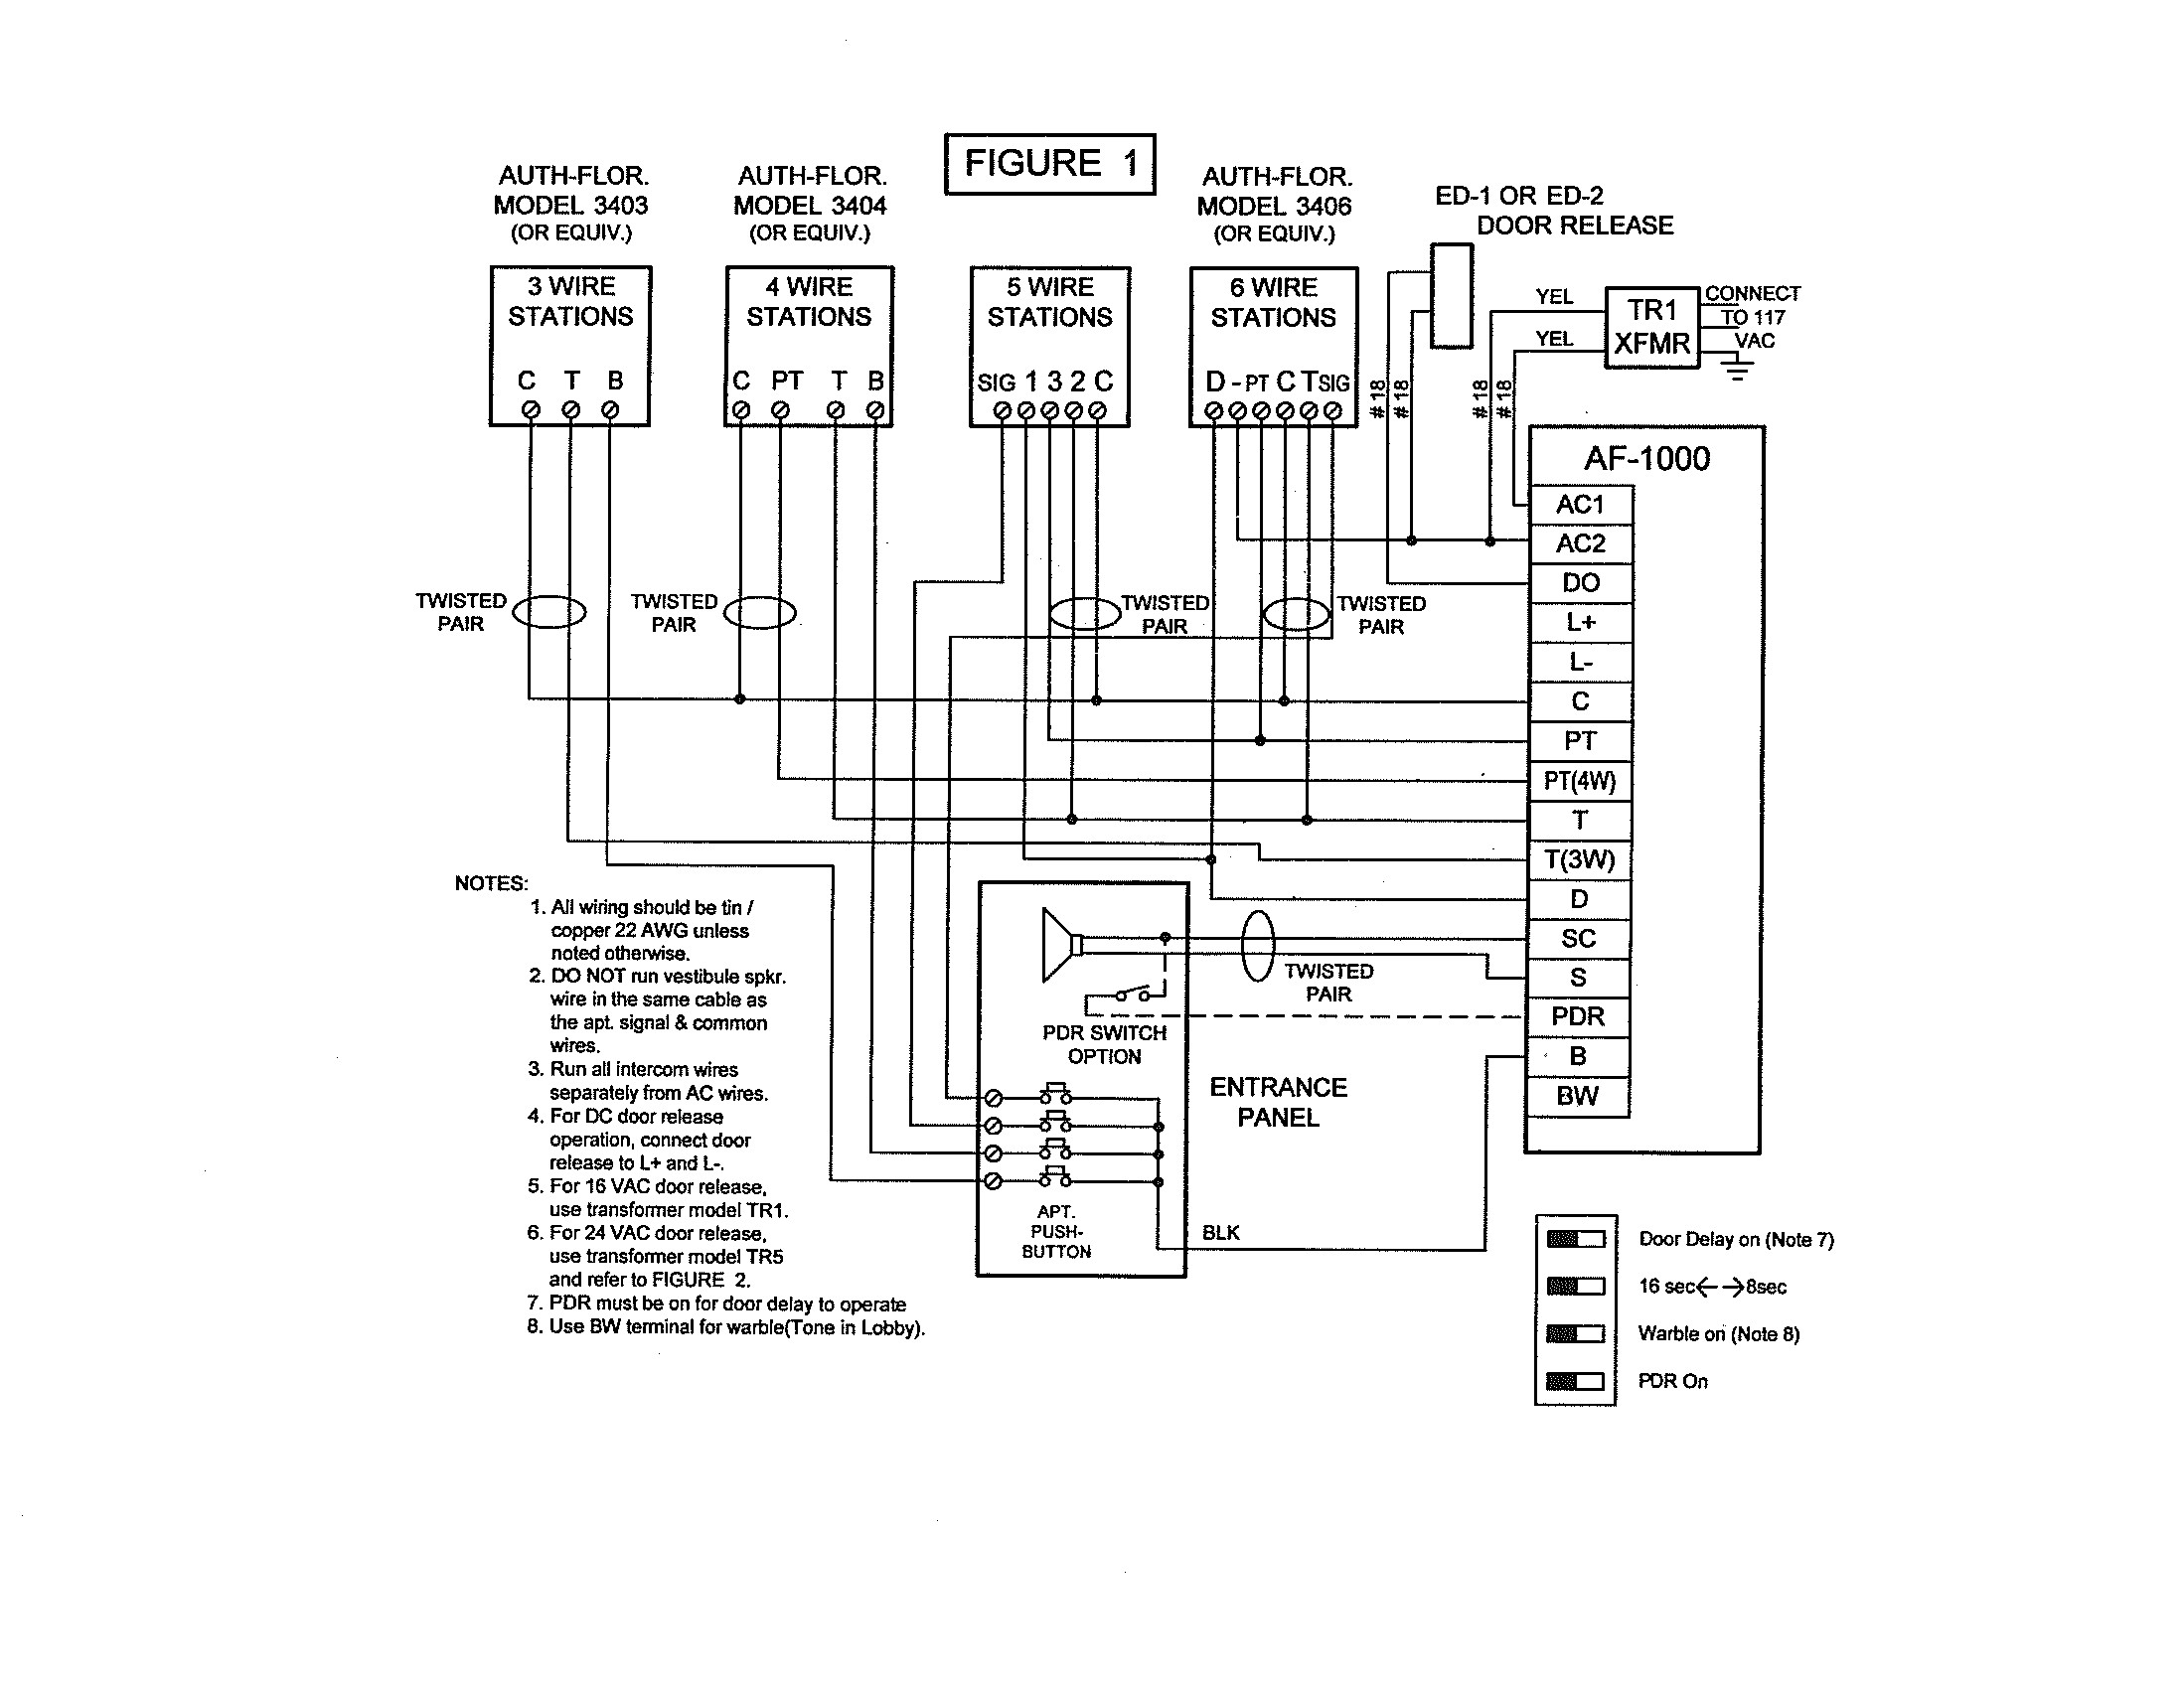 Samsung Tv Wiring Diagram Hecho moreover 2003 Polaris 330 Magnum Wiring Diagram furthermore Vermeer Bc935 Wiring Diagram besides 3 Position Switch Wiring Diagram Forward Reverse together with Doorbell Wiring Diagrams. on nutone doorbell wiring diagram